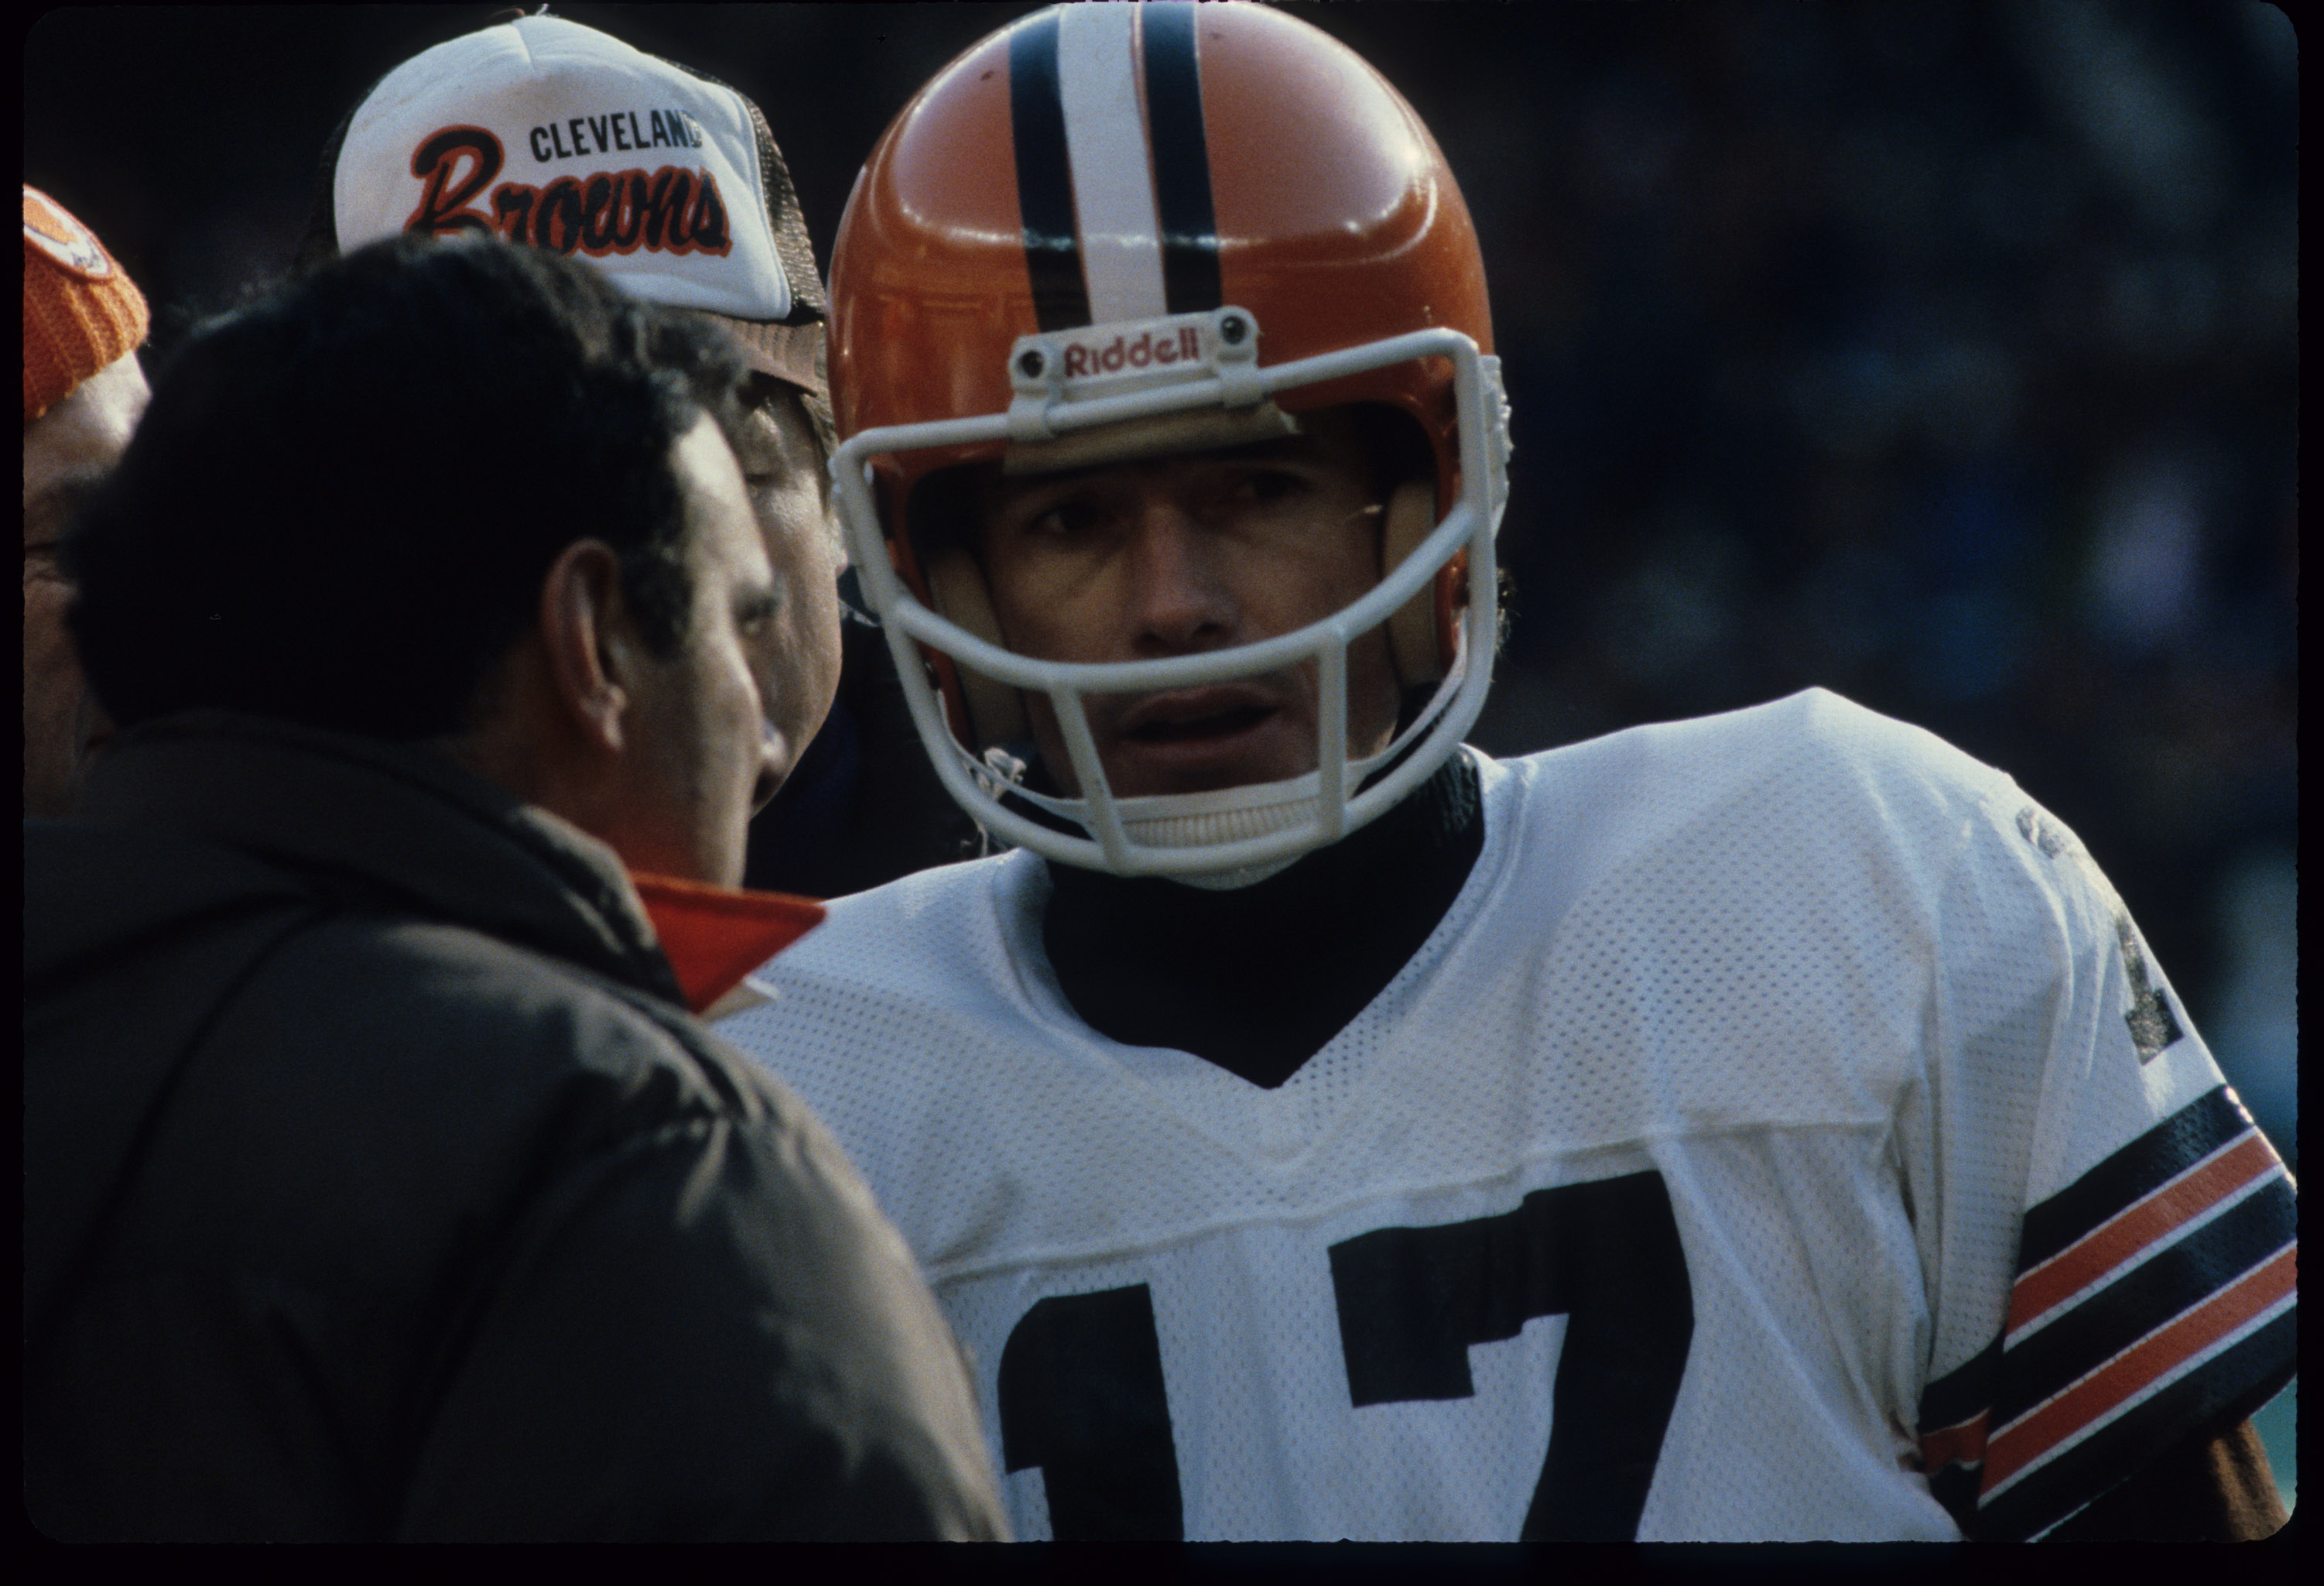 Cleveland Browns quarterback Brian Sipe (17) consults with head coach Sam Rutigliano during a 27-24 victory over the Cincinnati Bengals on December 21, 1980, at Riverfront Stadium in Cincinnati, Ohio. (Photo by Dennis Collins/Getty Images)